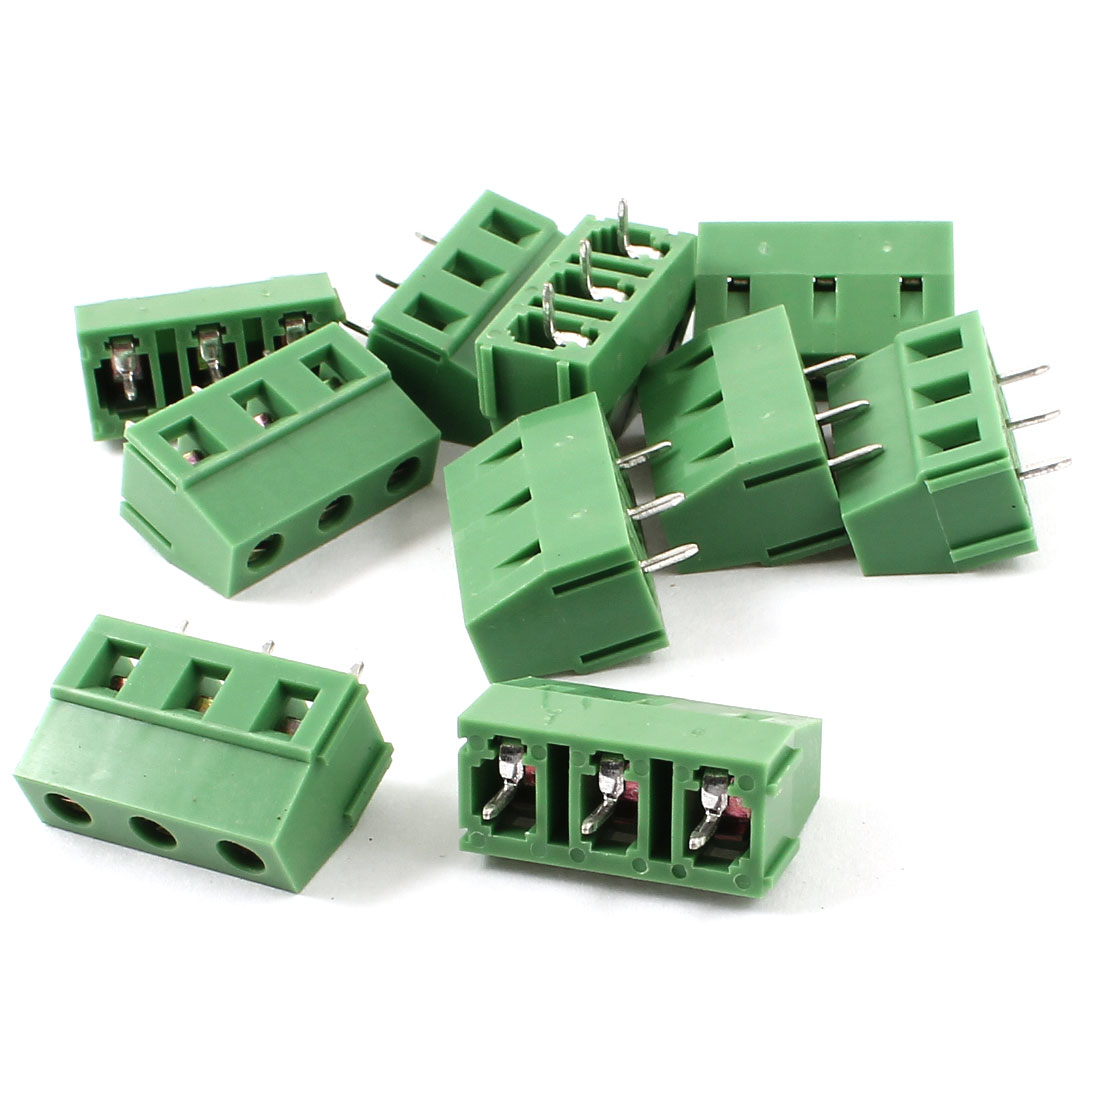 10 Pieces 3Pin 7.5mm Spacing 300V 10A PCB Mount Type Terminal Block Green